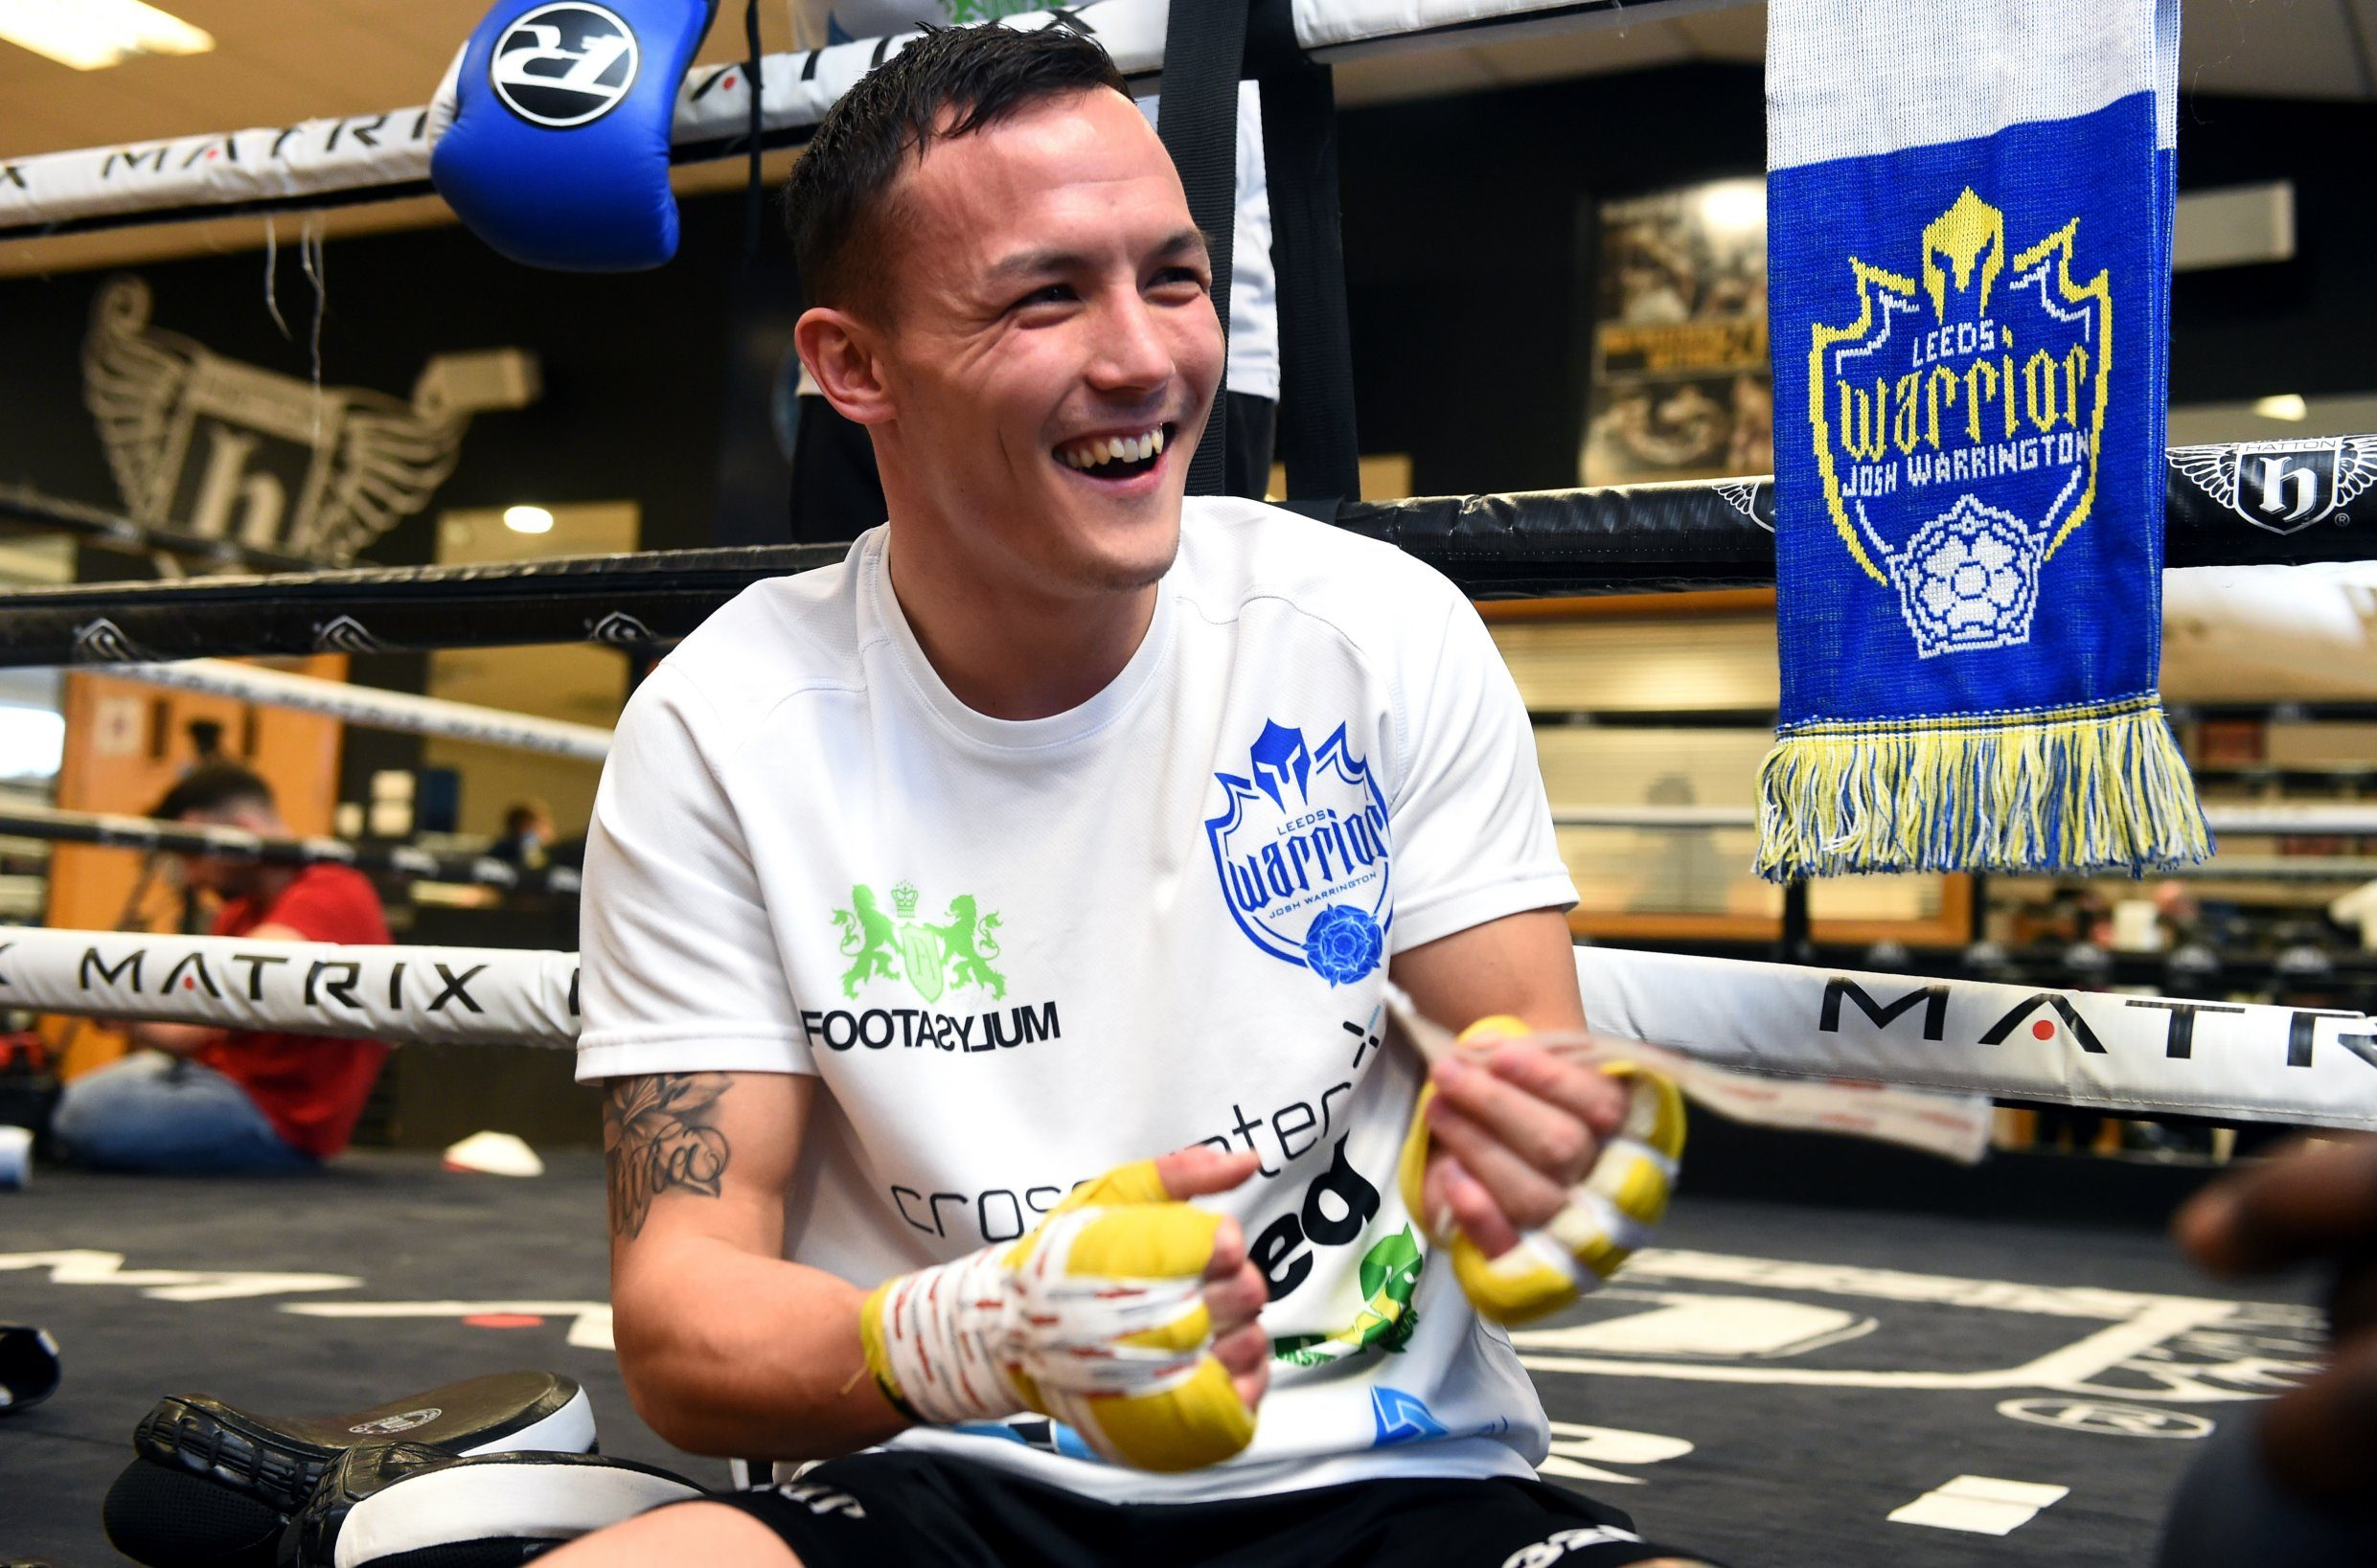 HYDE, ENGLAND - NOVEMBER 12: Josh Warrington looks on during a media workout at Hatton Health & Fitness at on November 12, 2018 in Hyde, England. (Photo by Nathan Stirk/Getty Images)